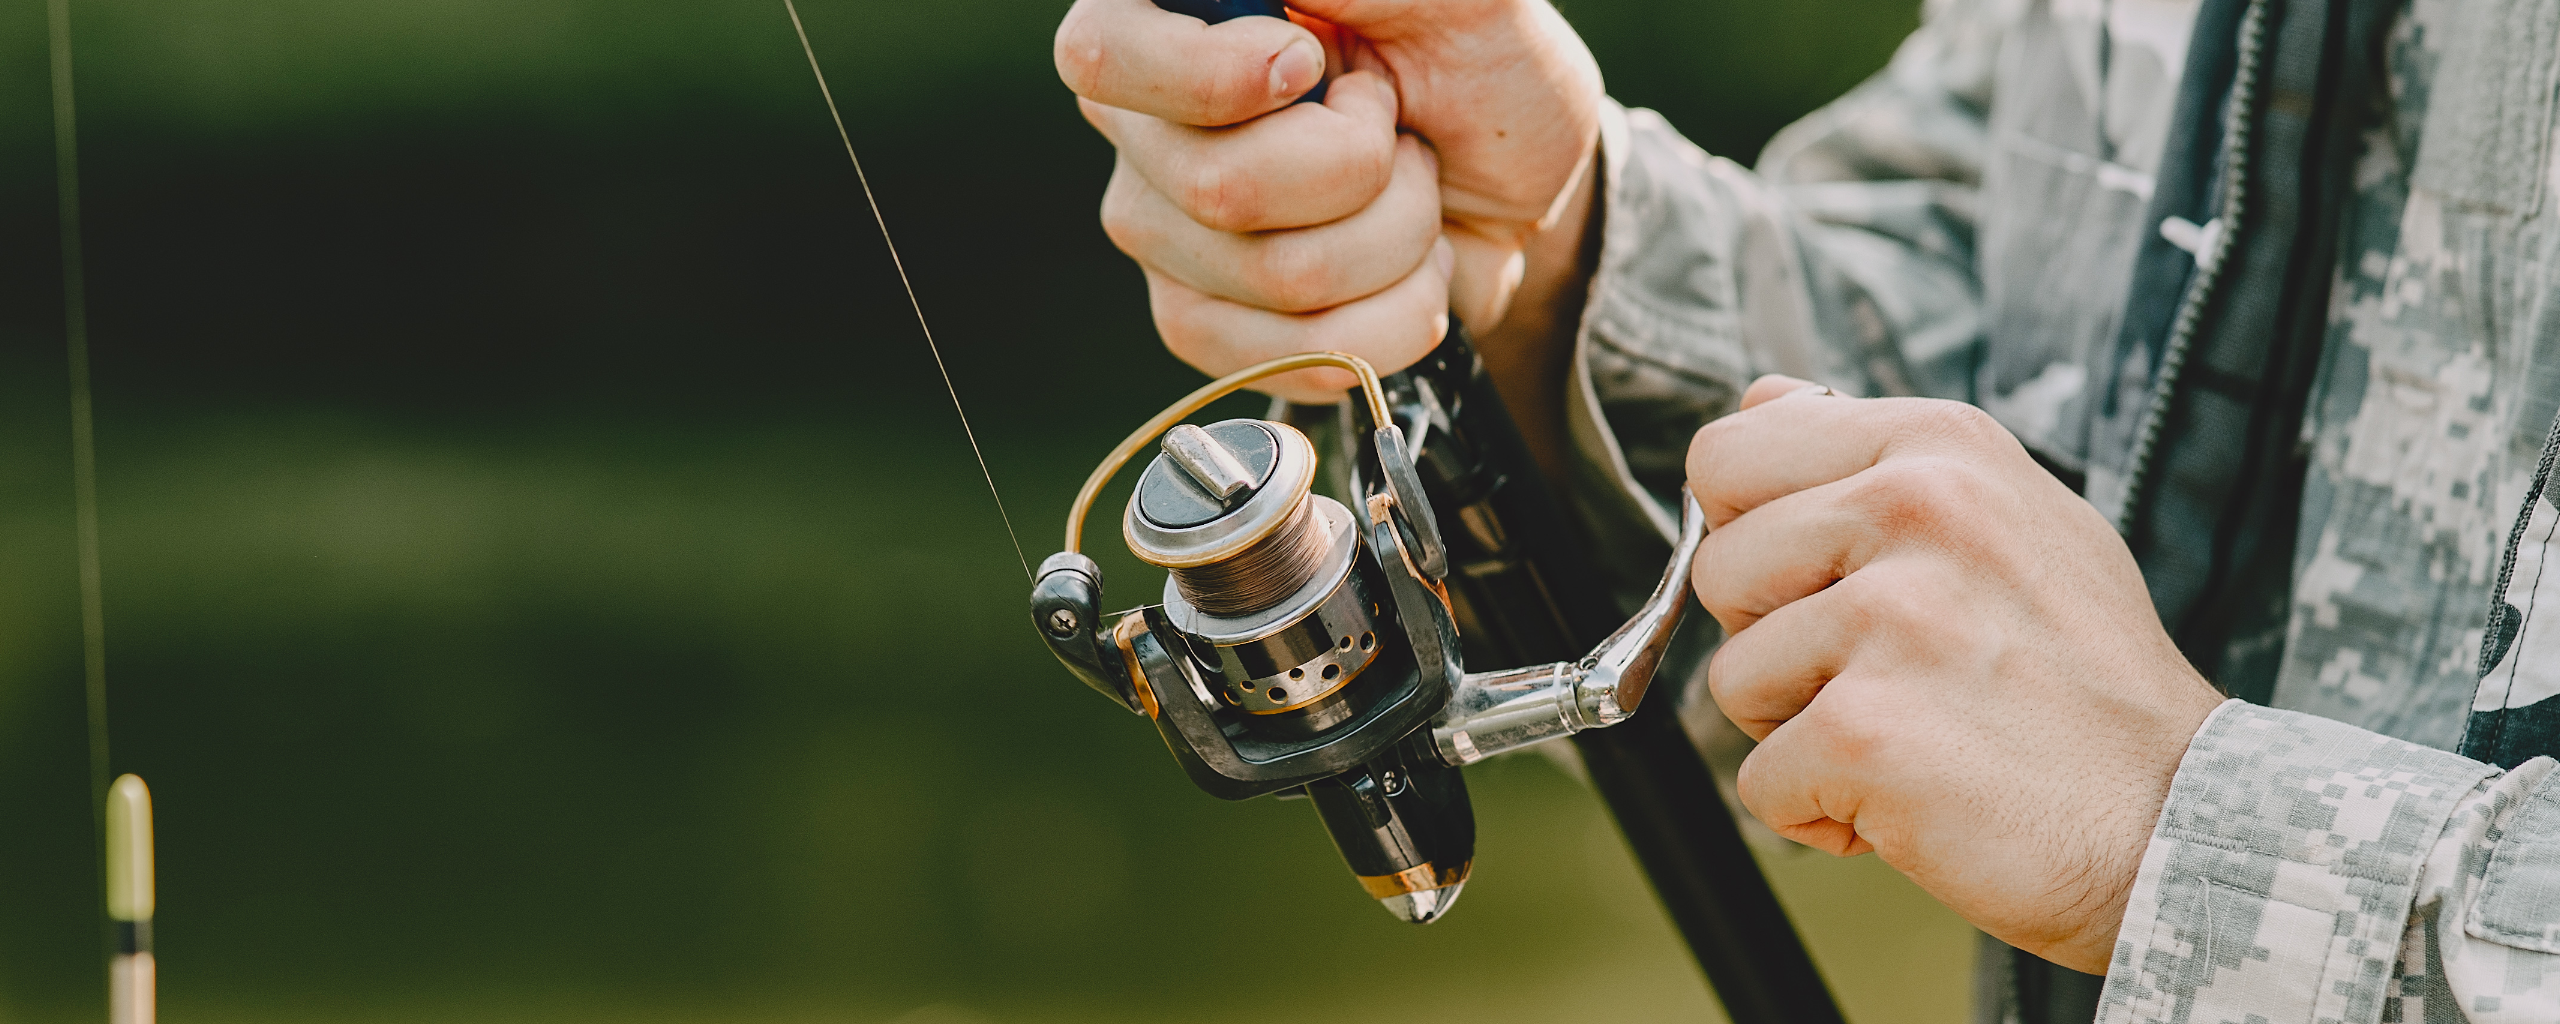 Best Spinning Reel Reviews TheOceanScan.com